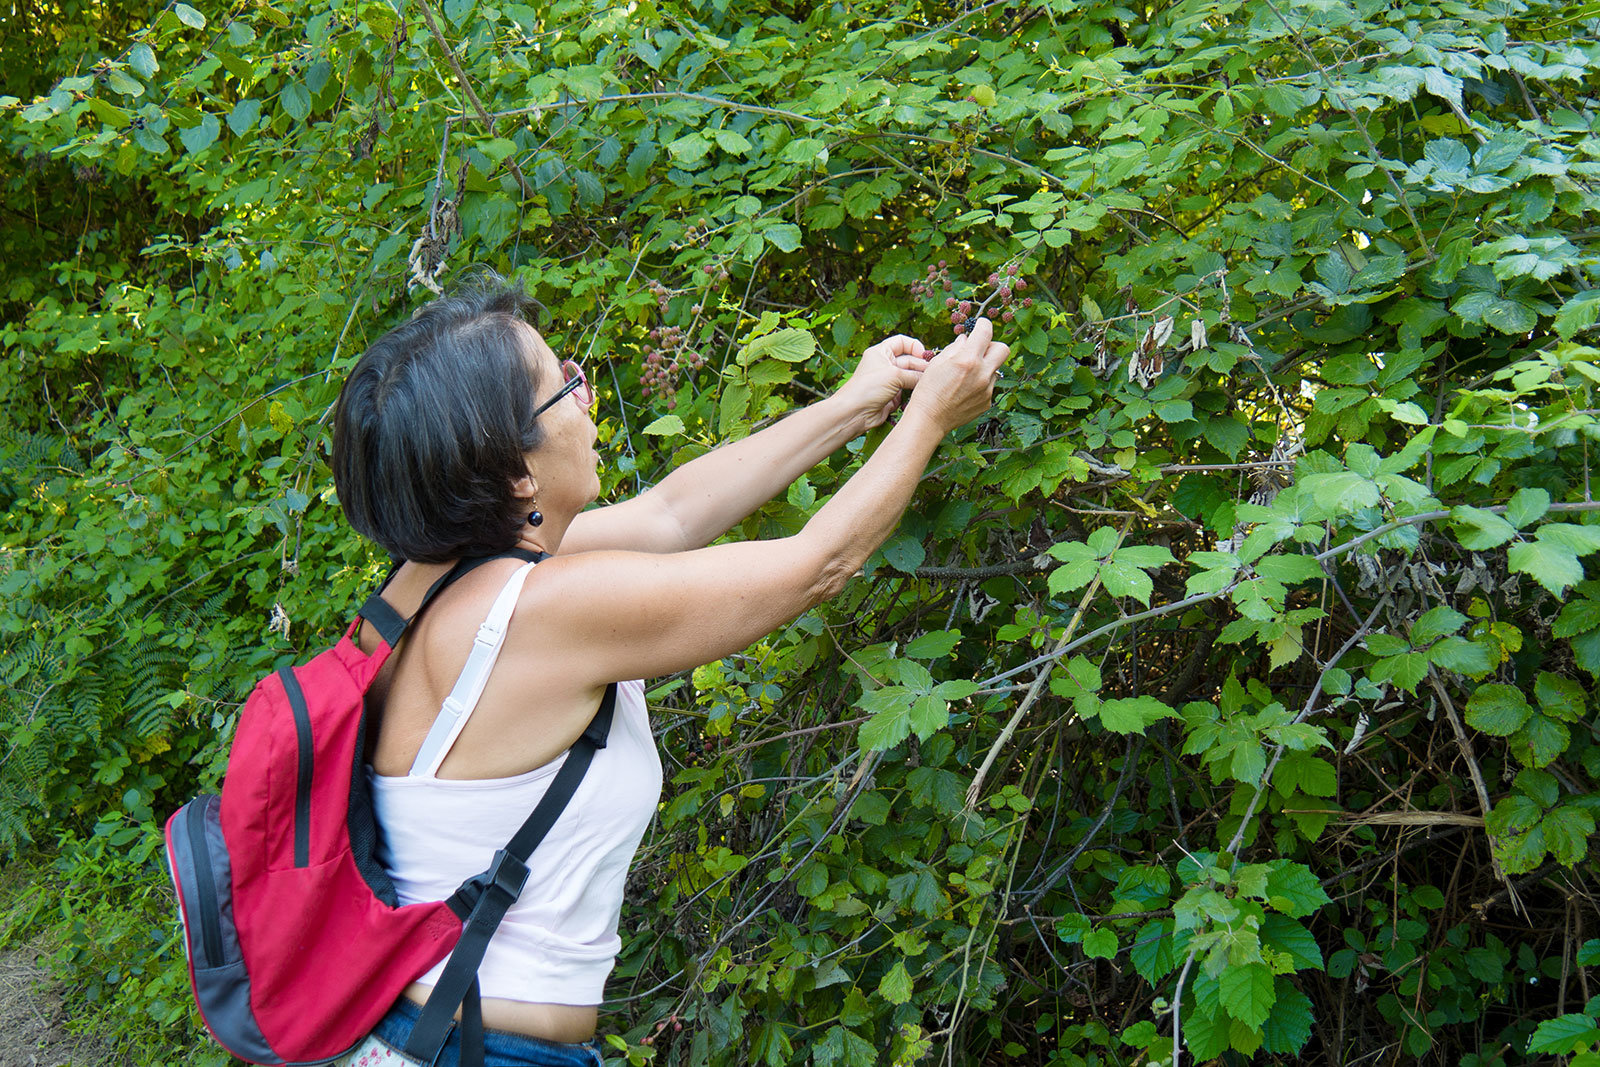 A mature woman with a backpack picks blackberries in nature.